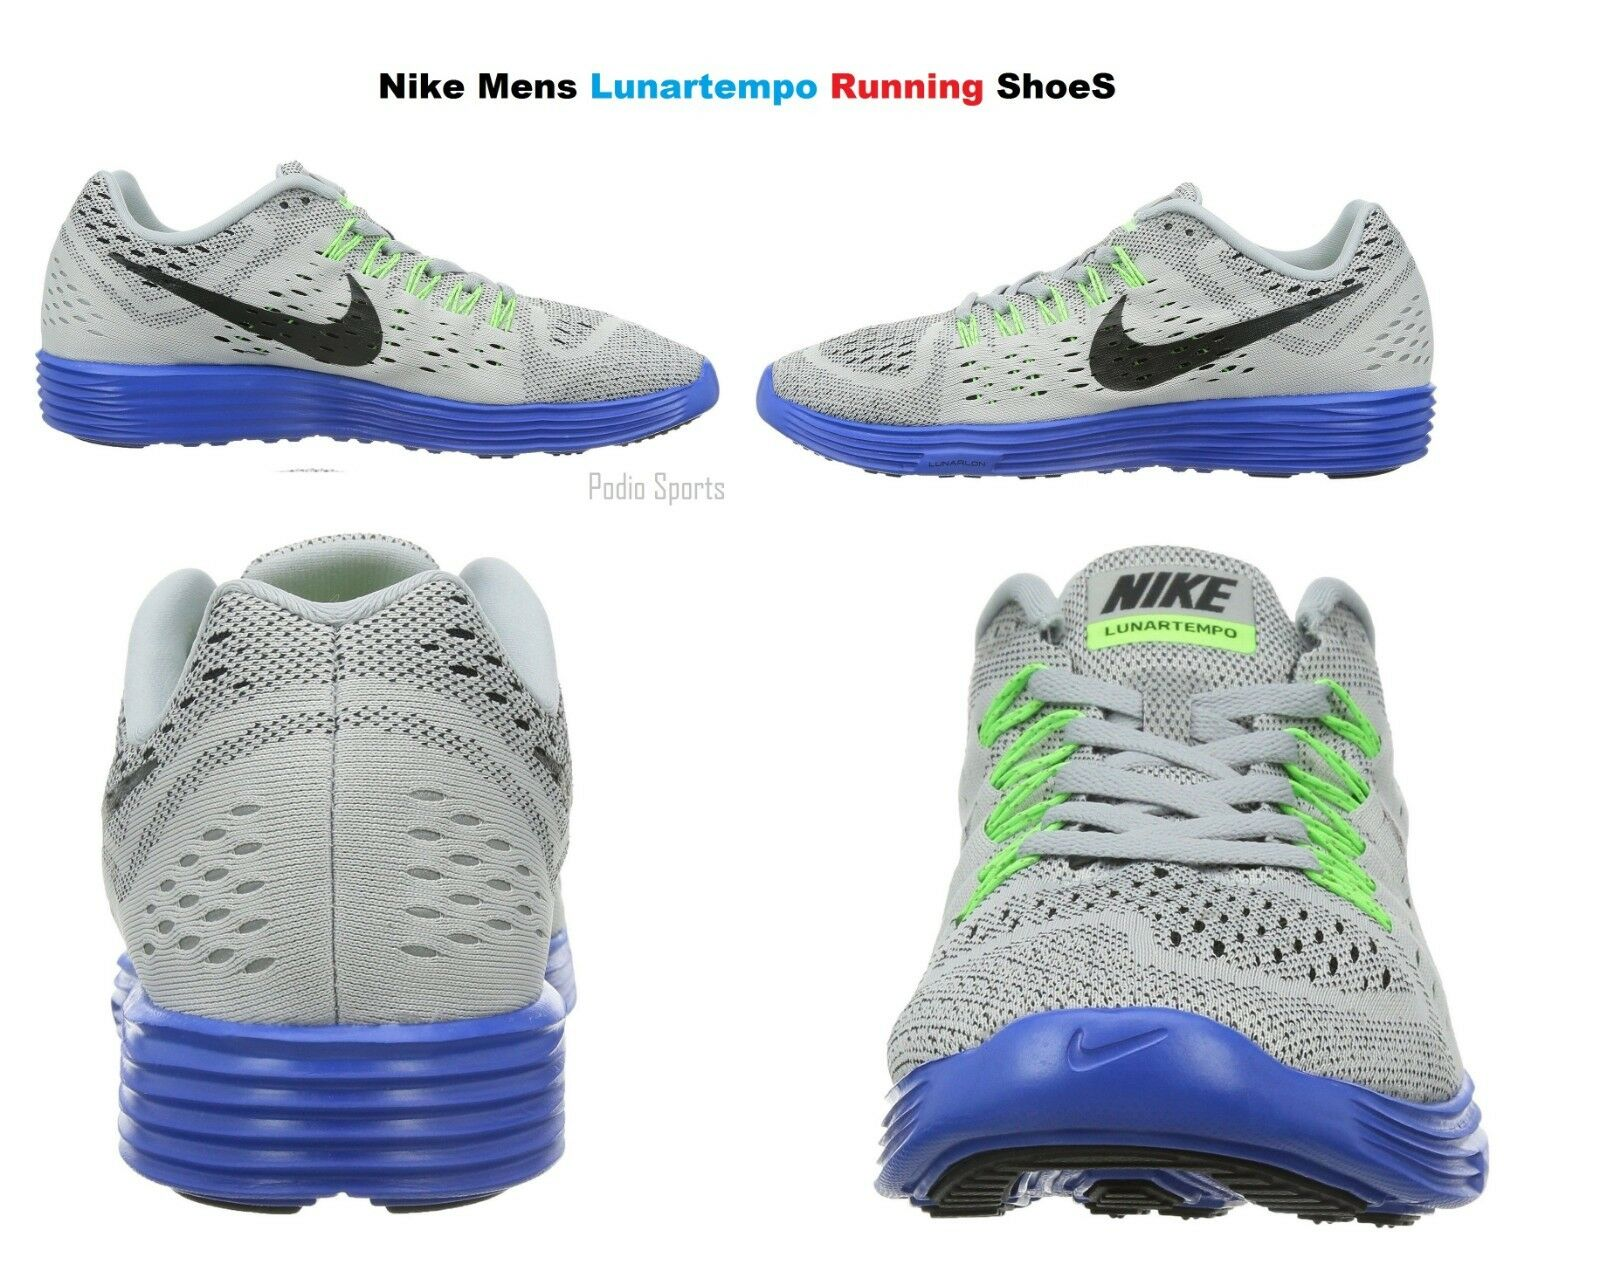 705461 004 GYM NEW NIKE LUNARTEMPO CROSS GYM 004 FIT TRAINING RUNNING d8a2ca